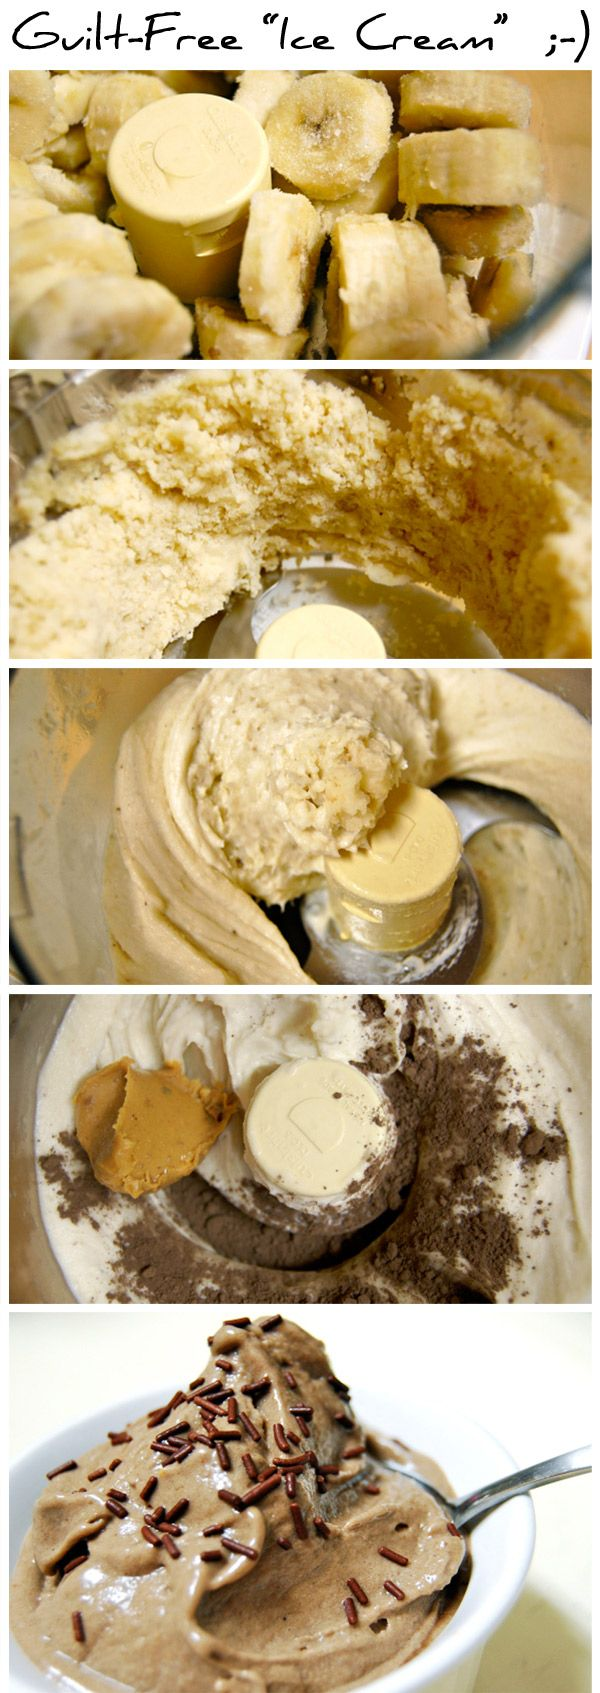 "Guilt-Free ""Ice Cream""! No sugar. No dairy. This recipe really only requires one ingredient plus one or two others if you want to add some flavor. Are you ready to discover this miracle? Pin and share if you like it! And.... enjoy!"